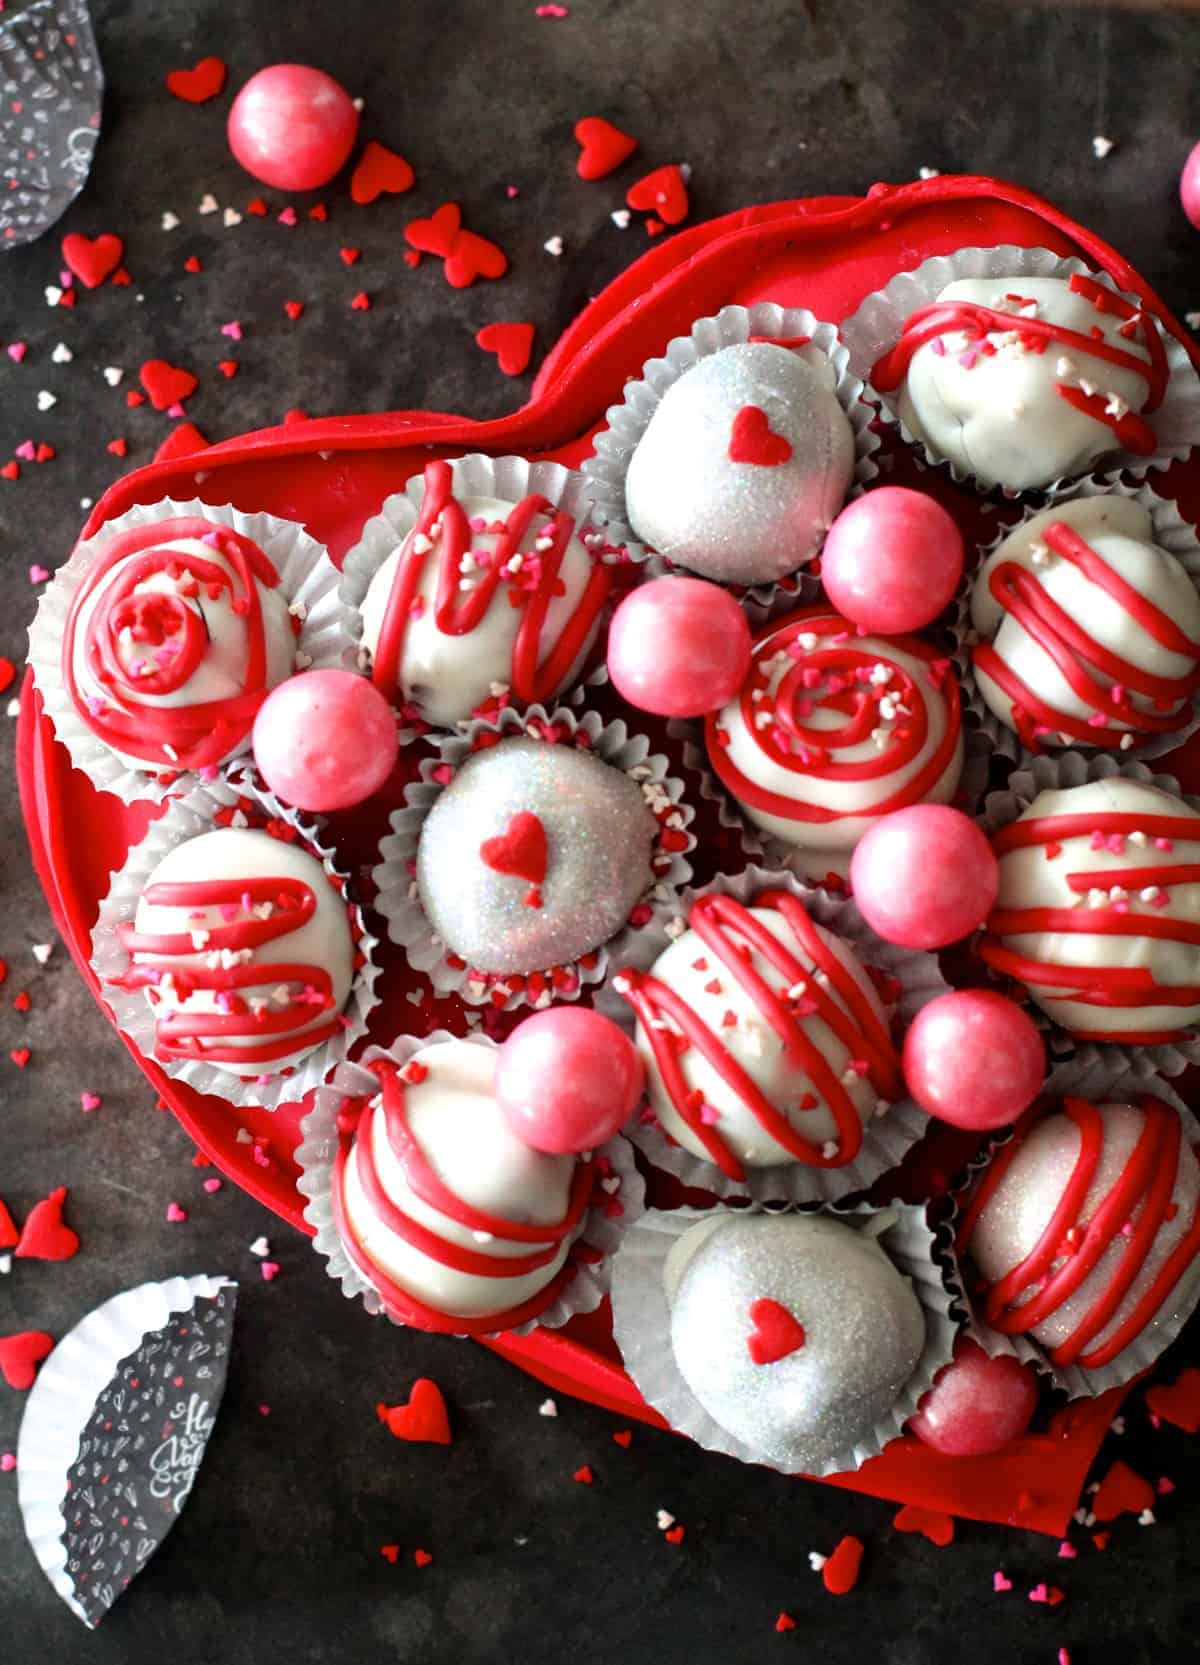 What is Valentine's day without a heart shaped box full of chocolates? Well this year, instead of buying one, make a completely edible heart box and fill it with fun cake balls.